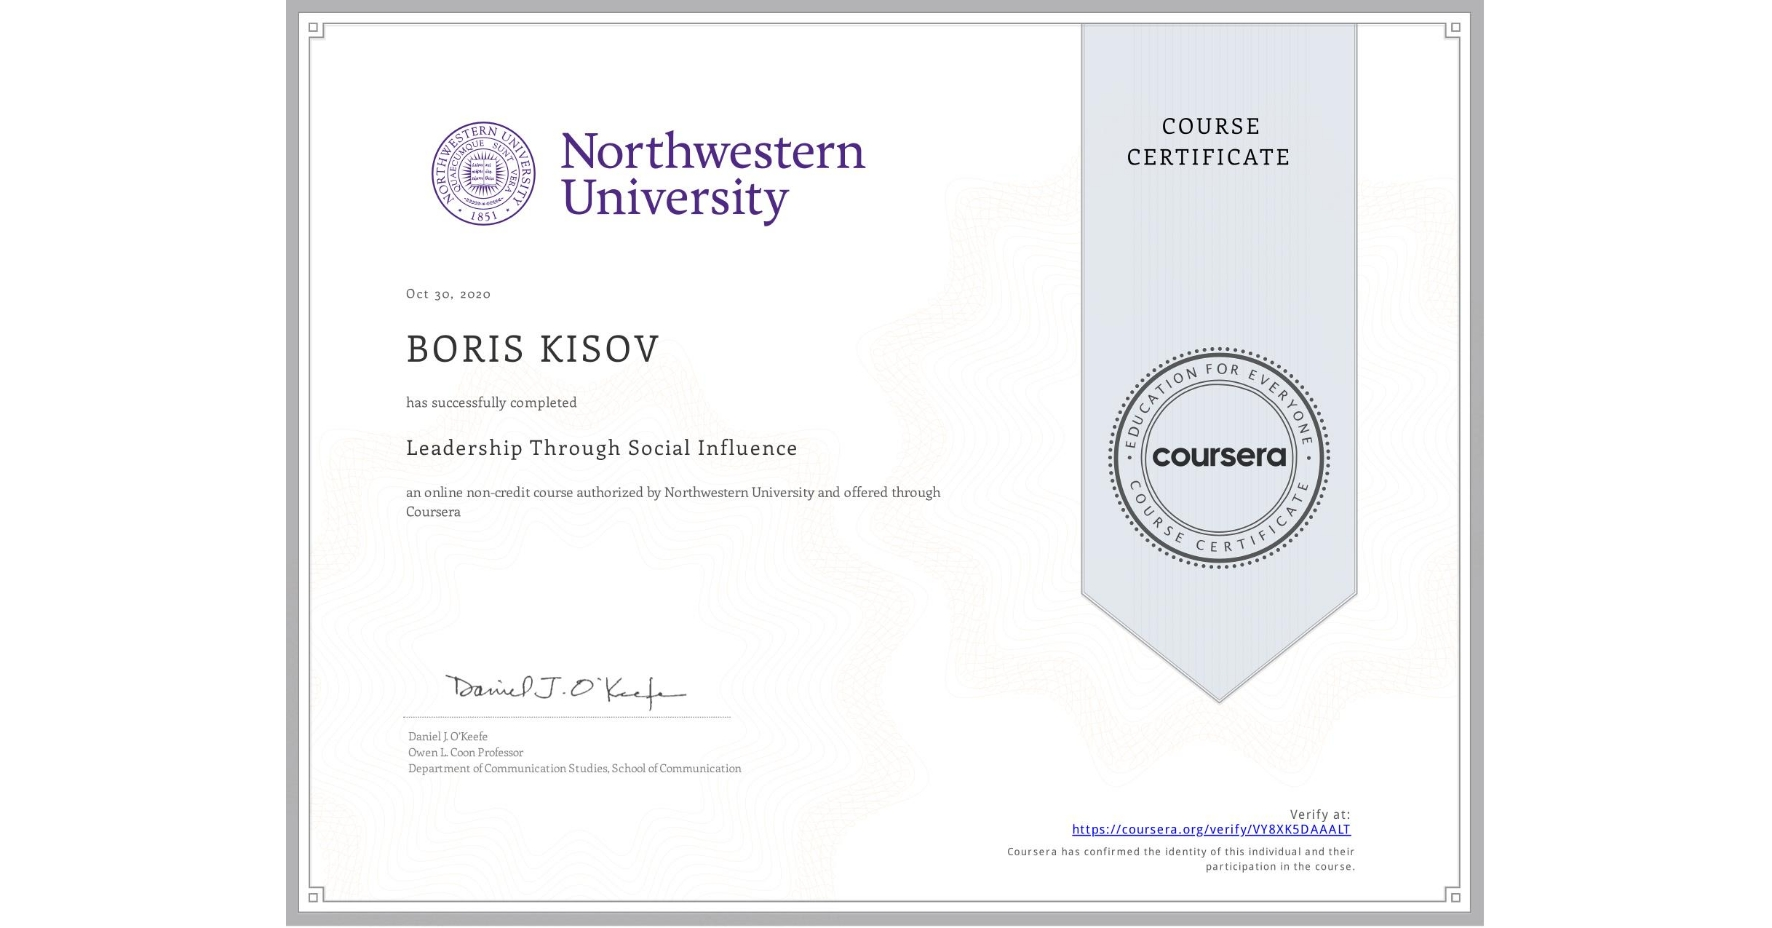 View certificate for BORIS KISOV, Leadership Through Social Influence, an online non-credit course authorized by Northwestern University and offered through Coursera